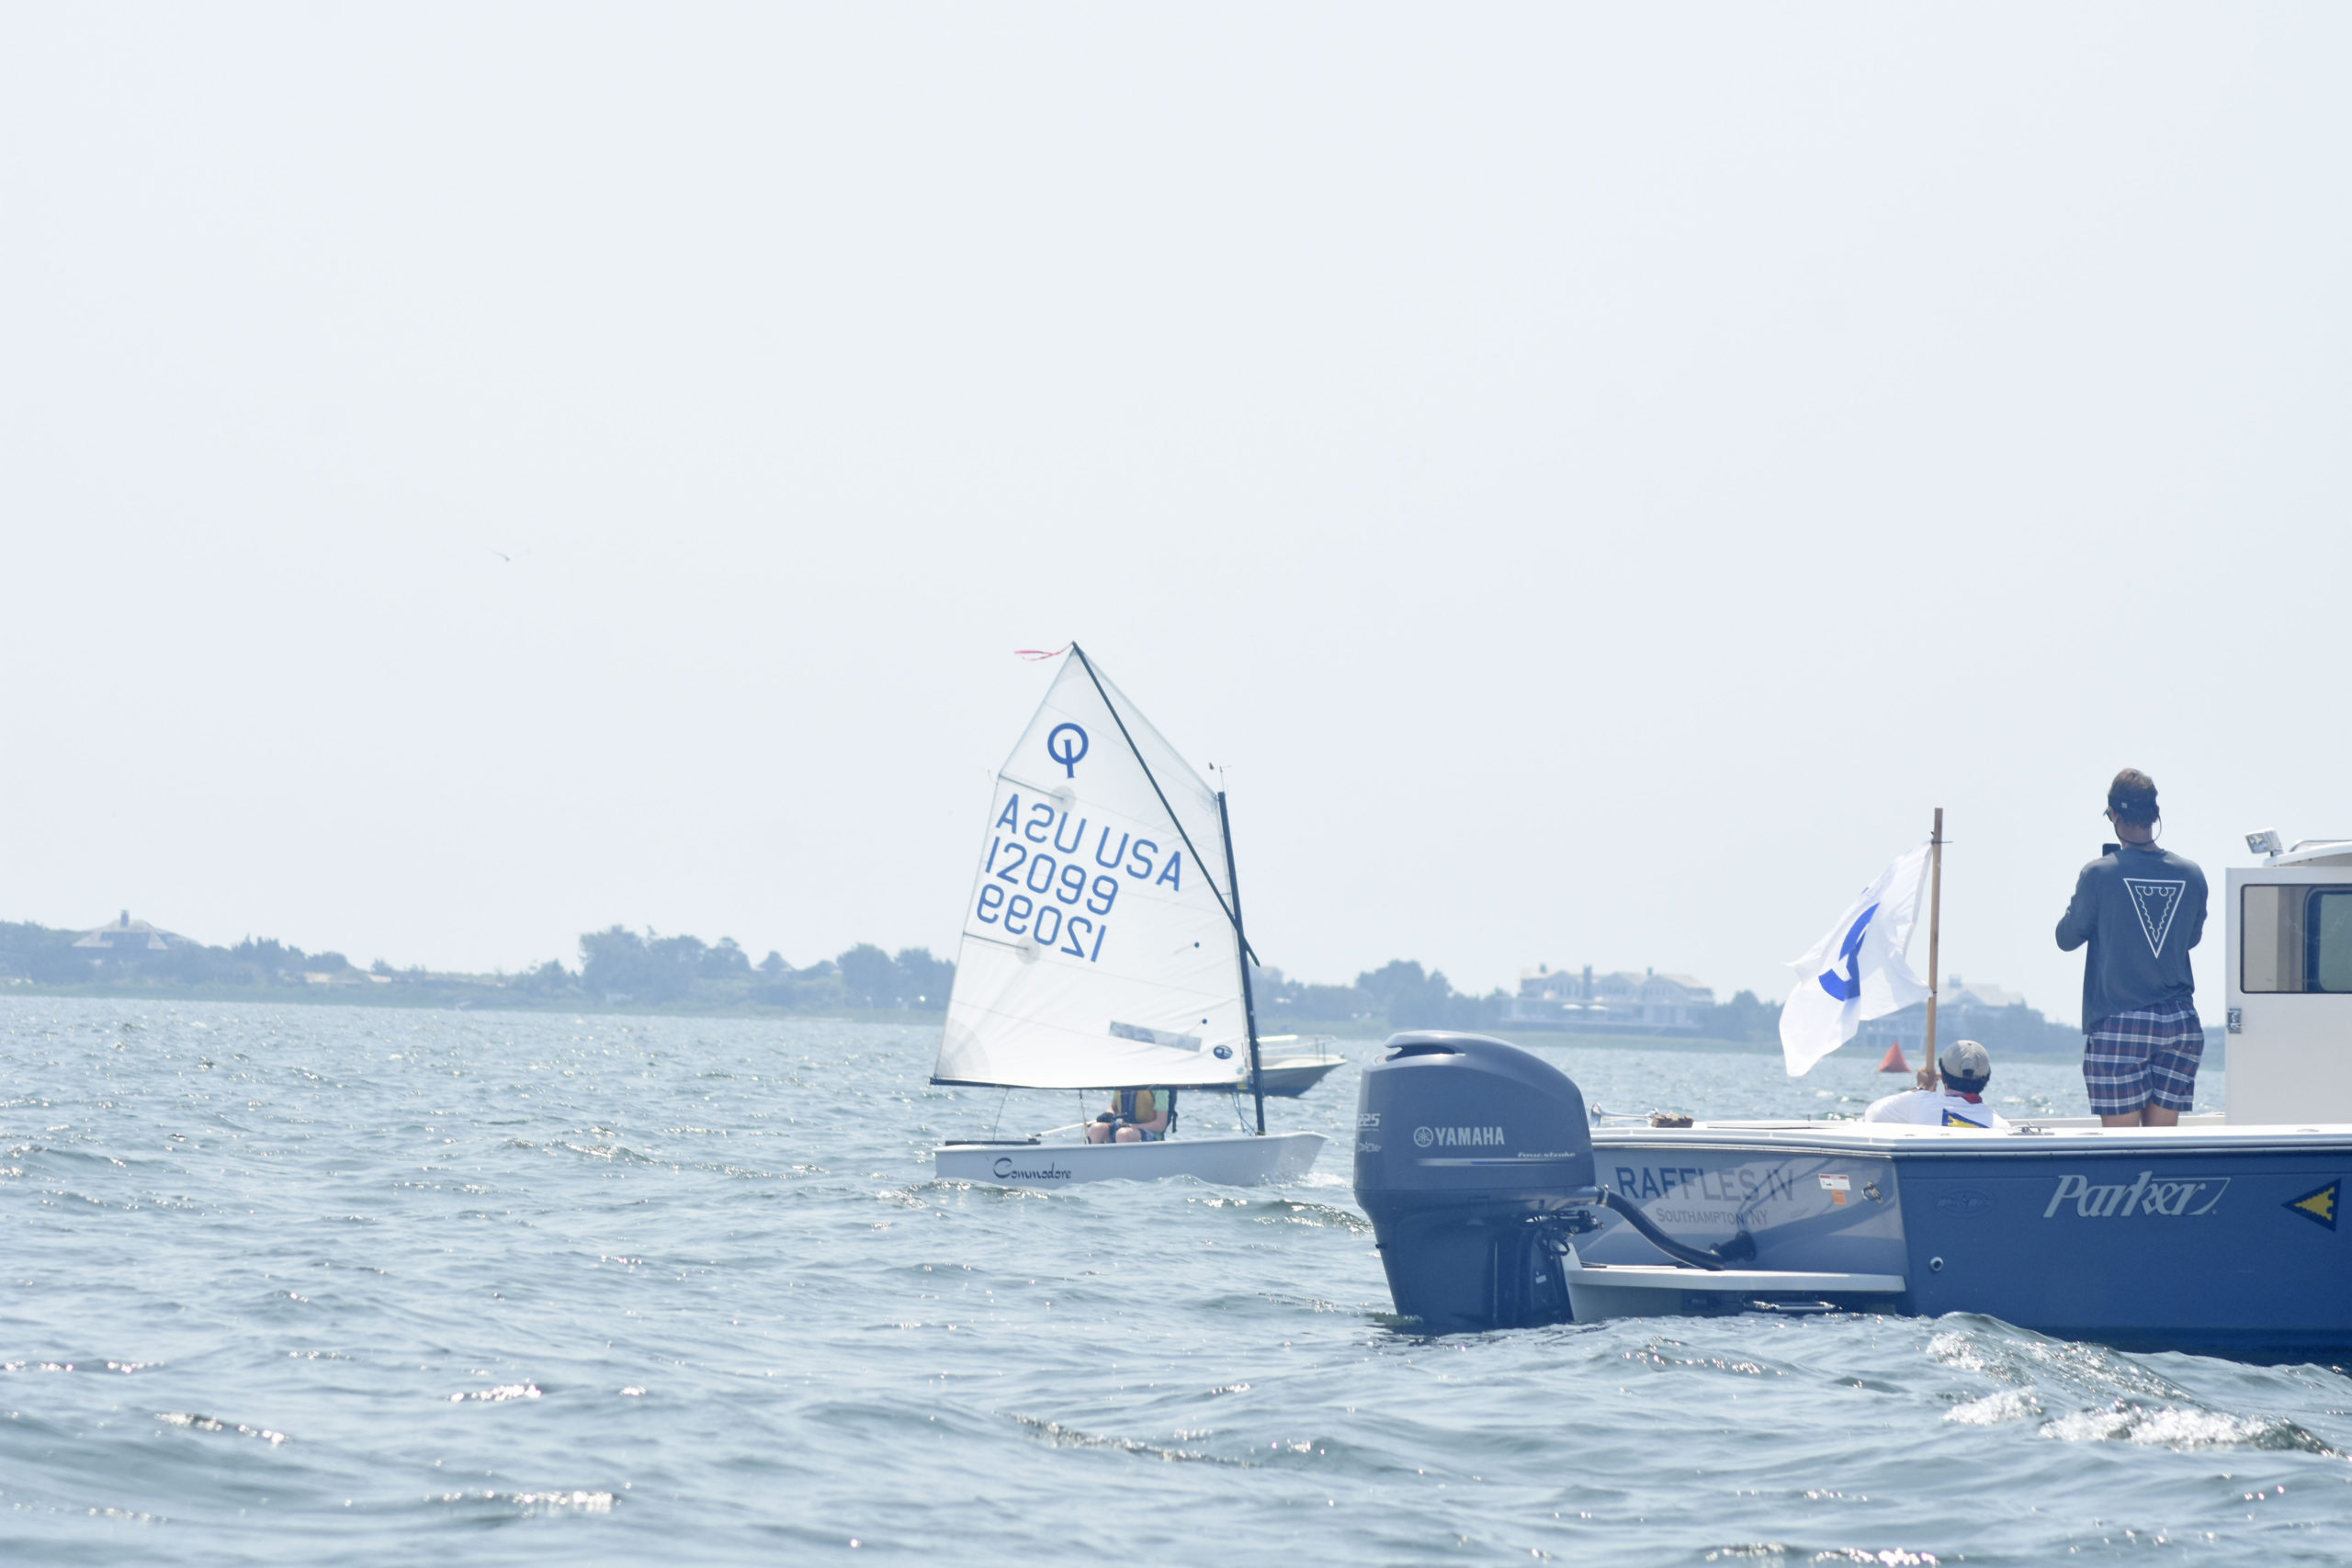 Brian Lynch of Old Cove Yacht Club crosses the finish line in second place.